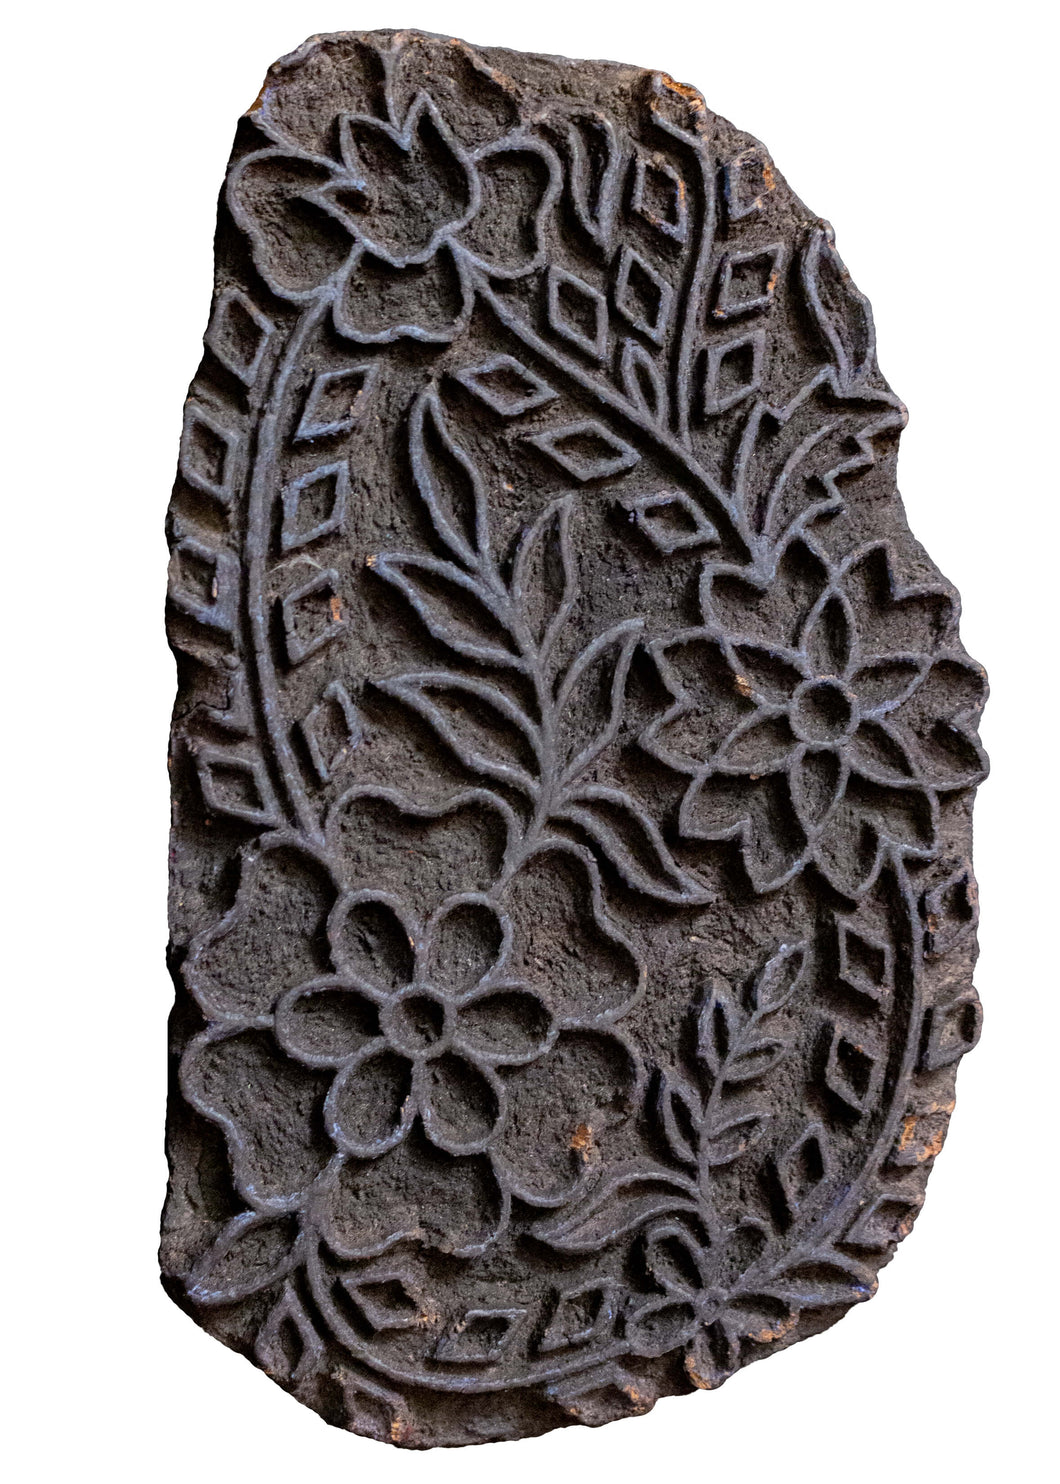 Vintage hand-carved textile stamp with a complex boteh design. In good vintage condition, please note there might be some dye residue on the stamp.